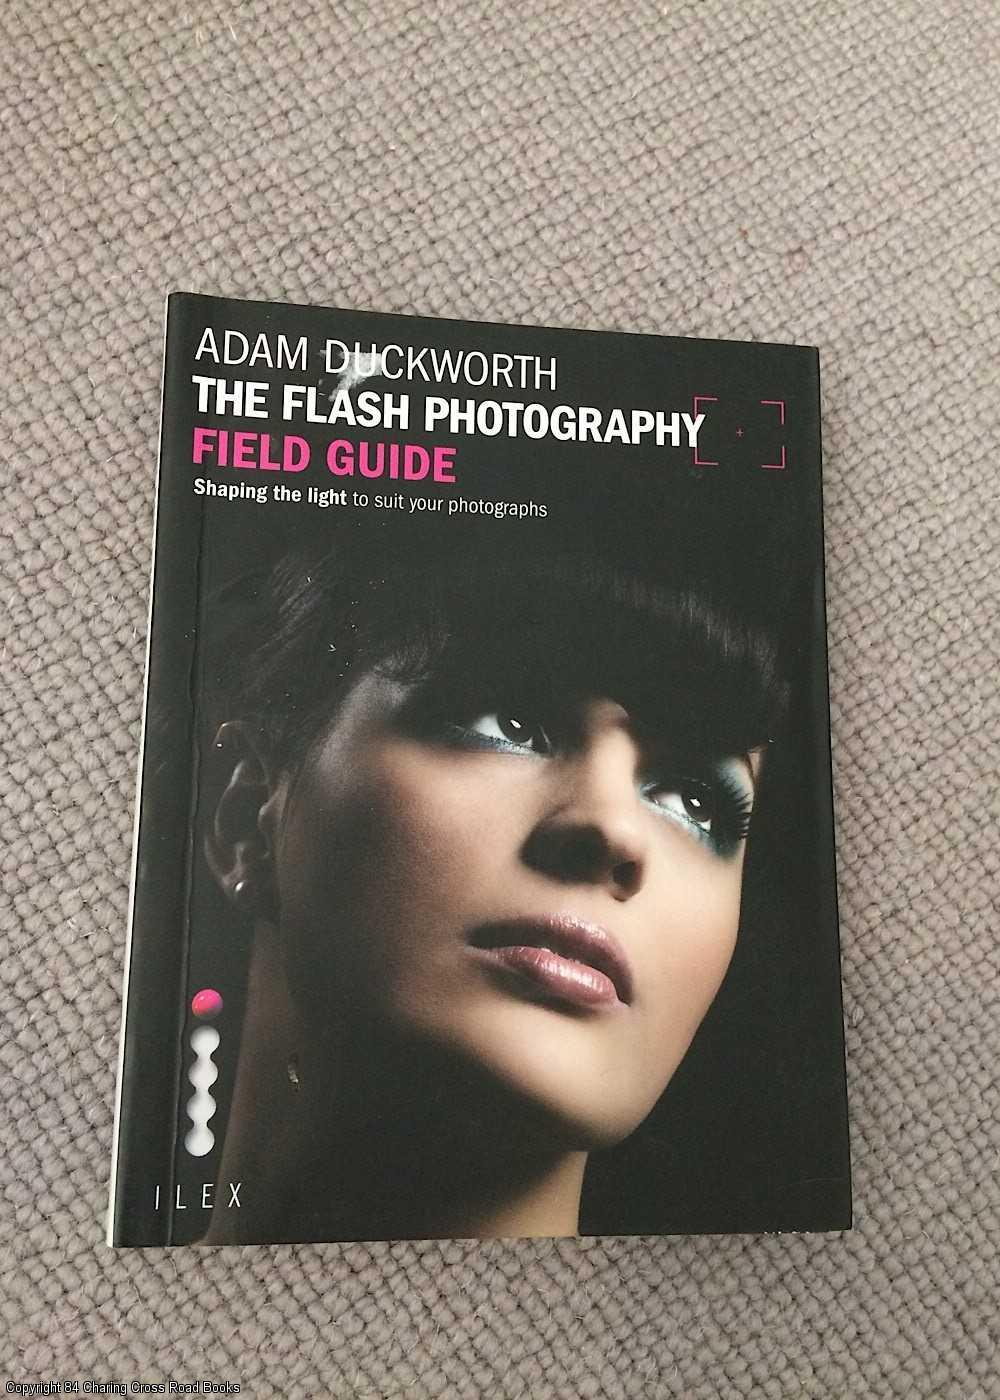 ADAM DUCKWORTH - The Flash Photography Field Guide: Shaping the Light to Suit Your Photographs